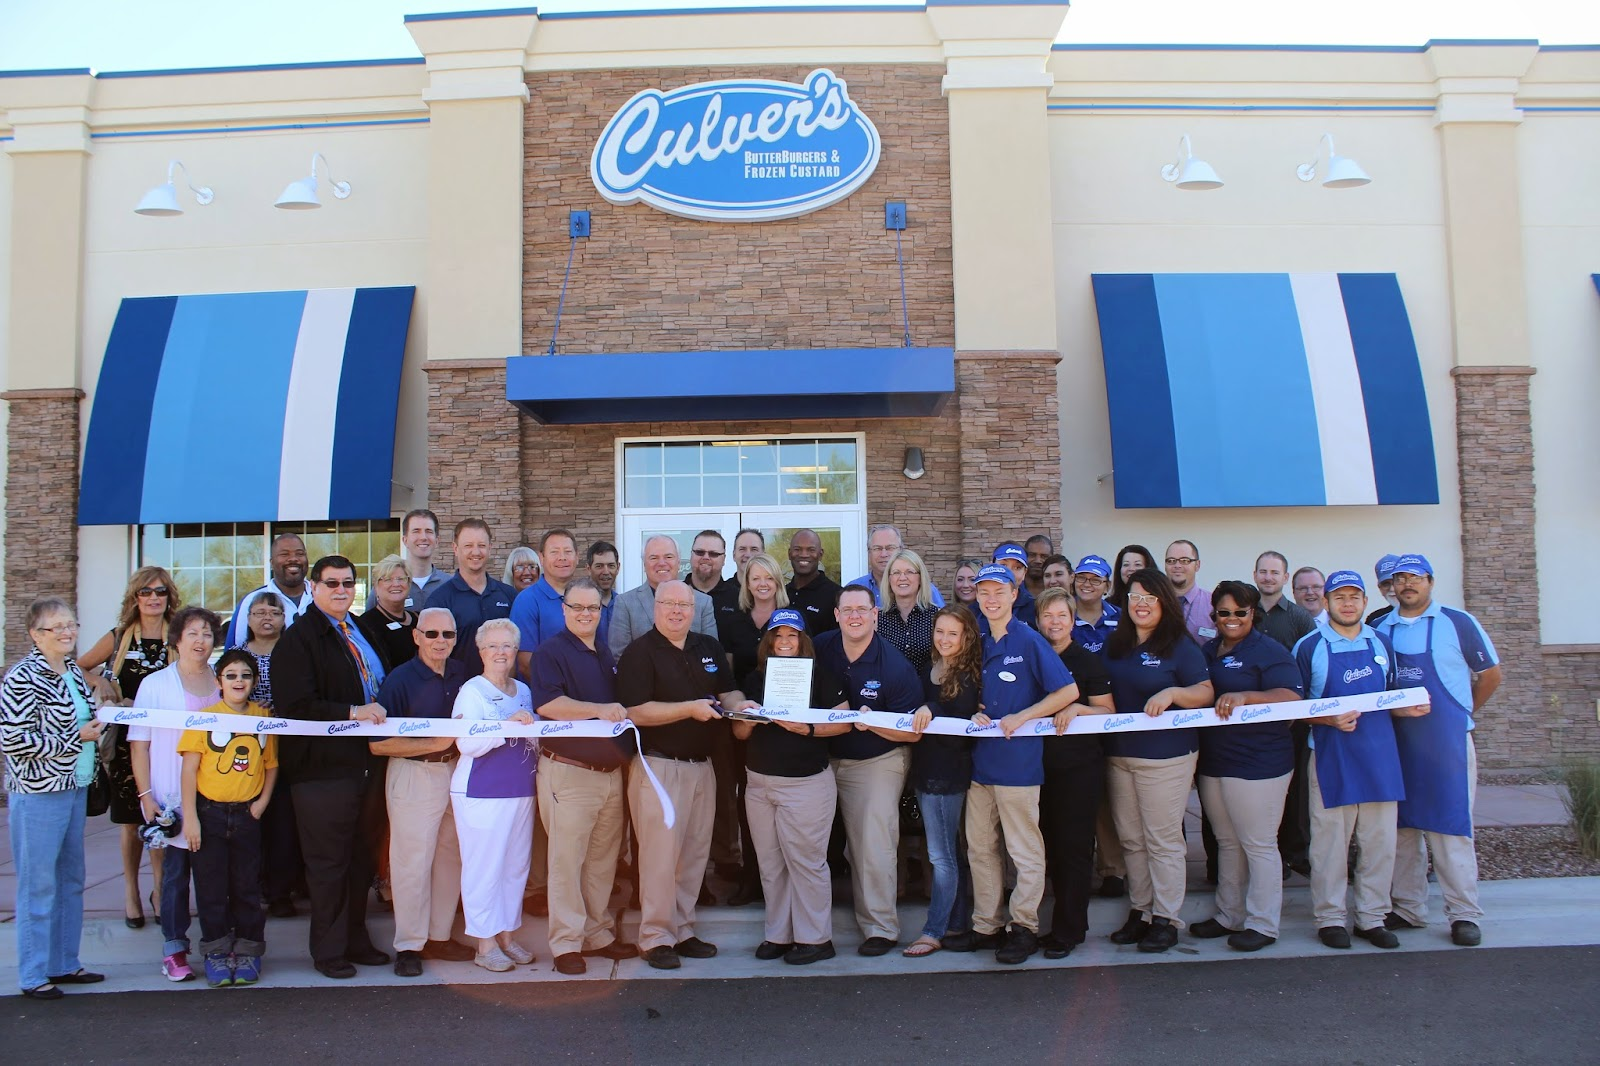 Grand opening celebration for Culver's at Kino